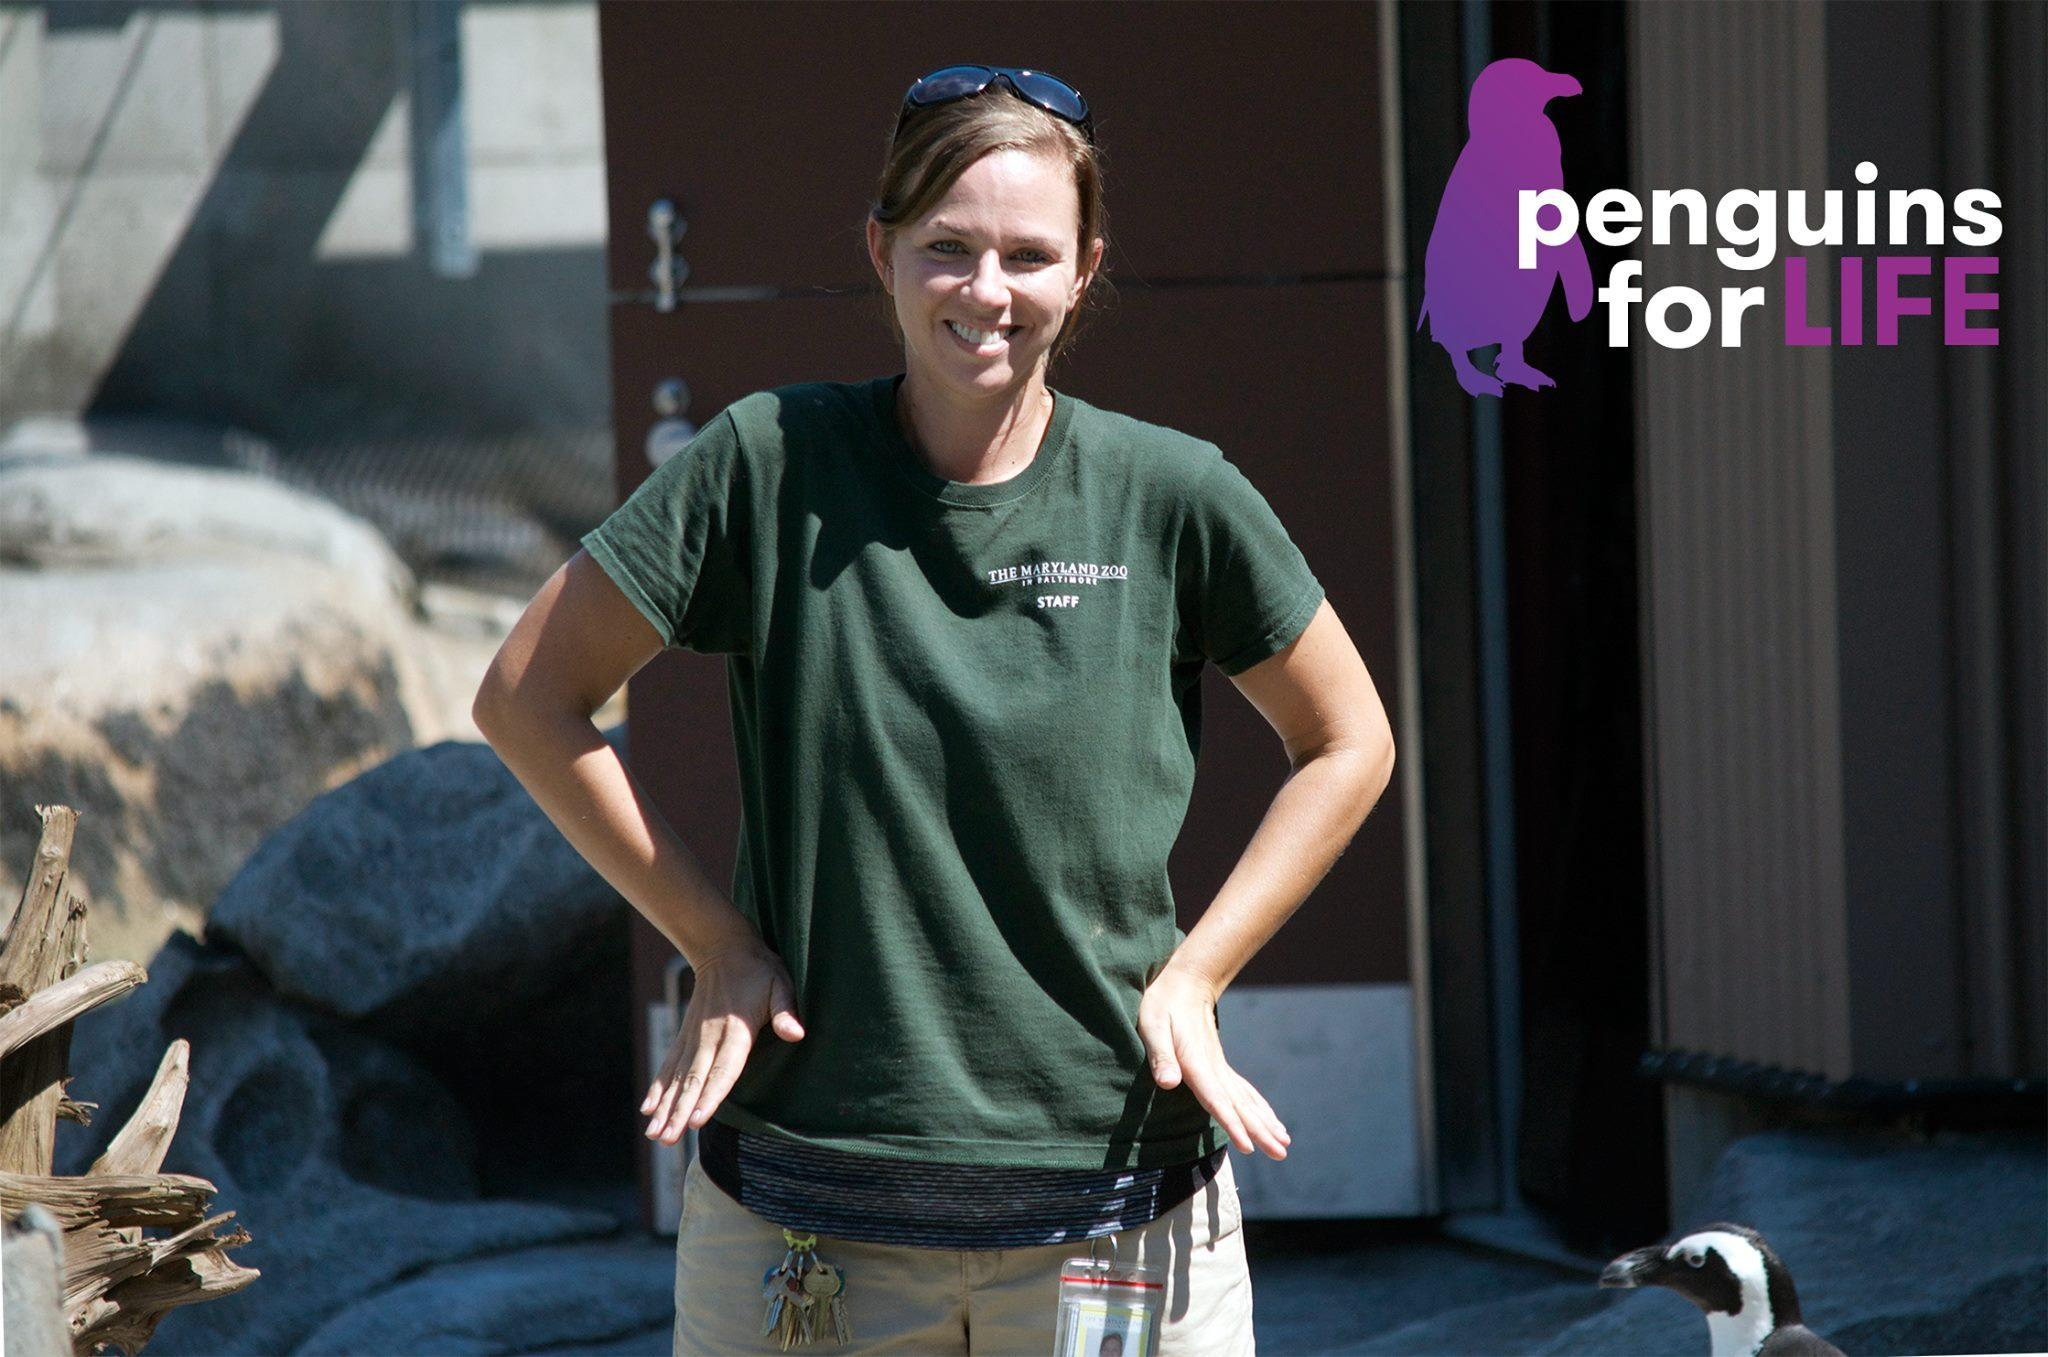 Jen Kottyan, the Maryland Zoo's avian collection and conservation manager, shows how to do the penguin pose